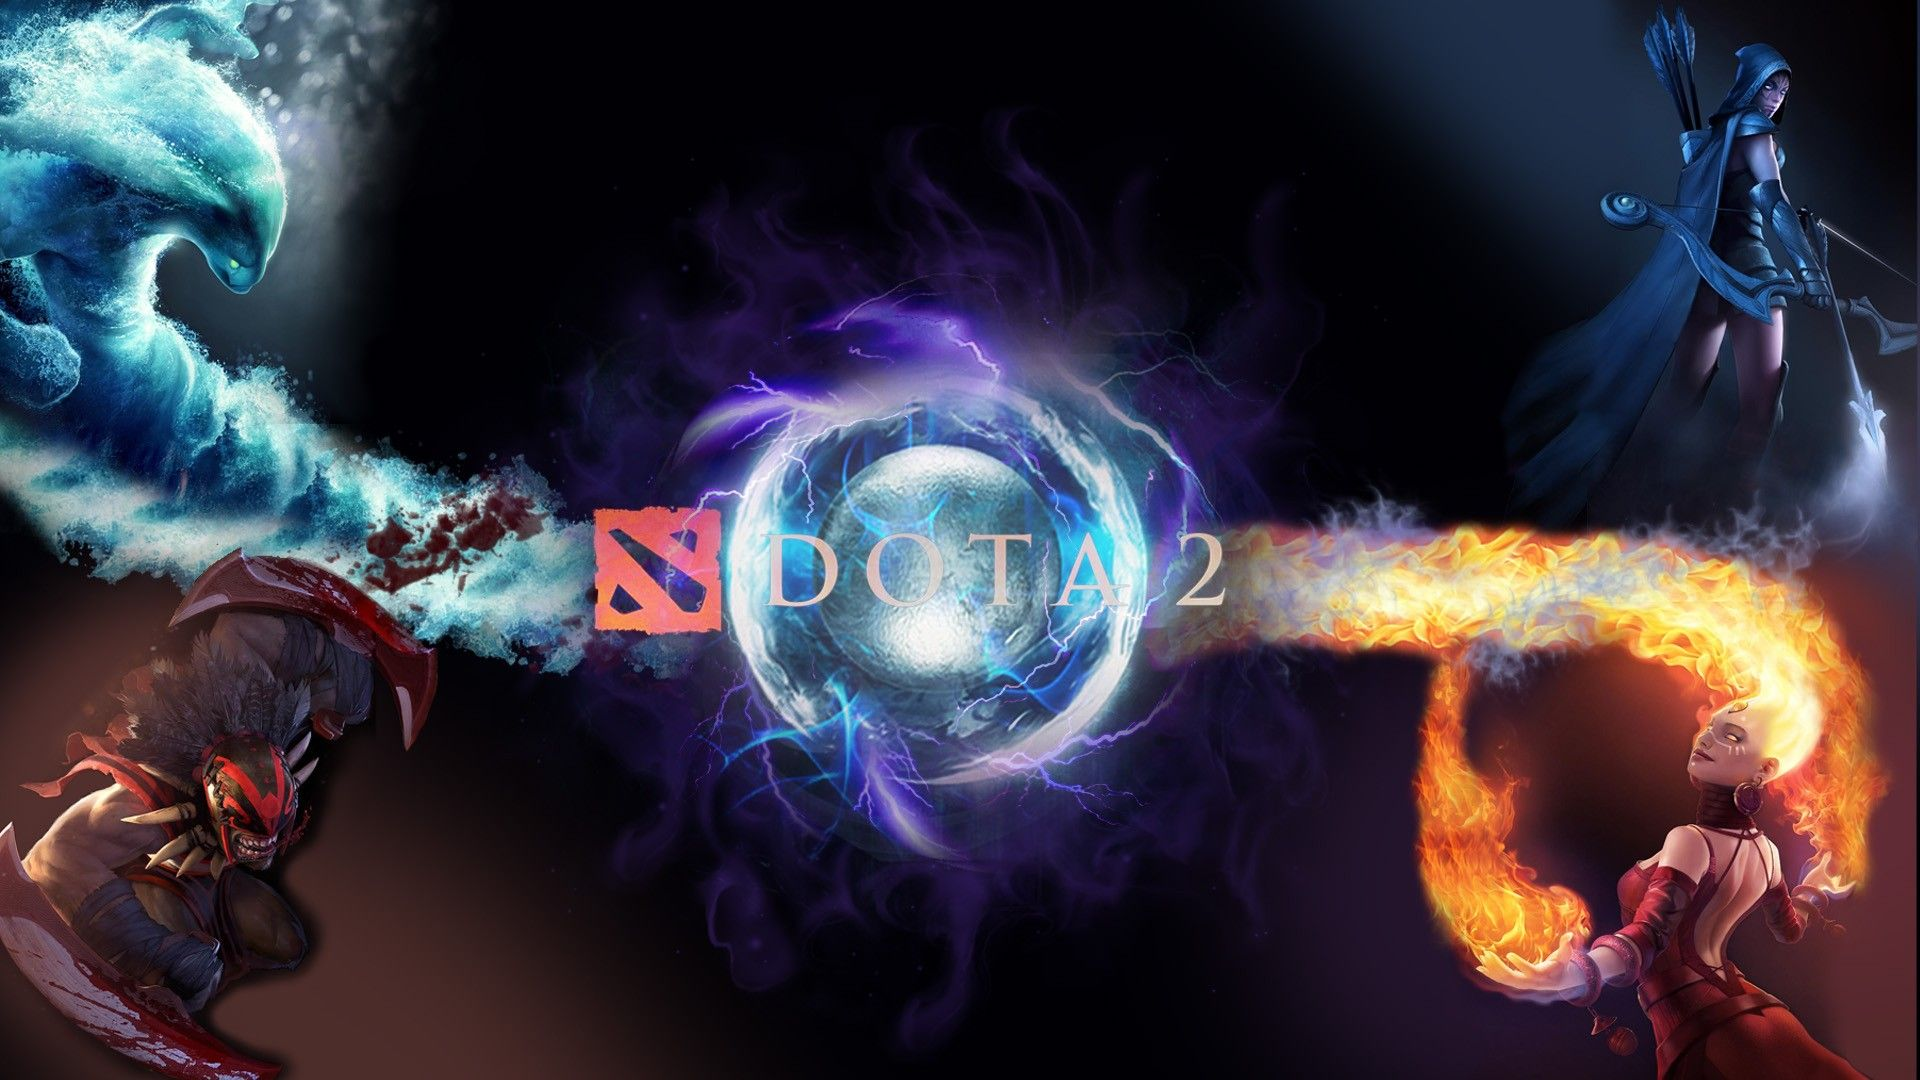 Dota 2 Heroes Images Dota 2 Wallpaper Dota 2 Wallpapers Hd Dota 2